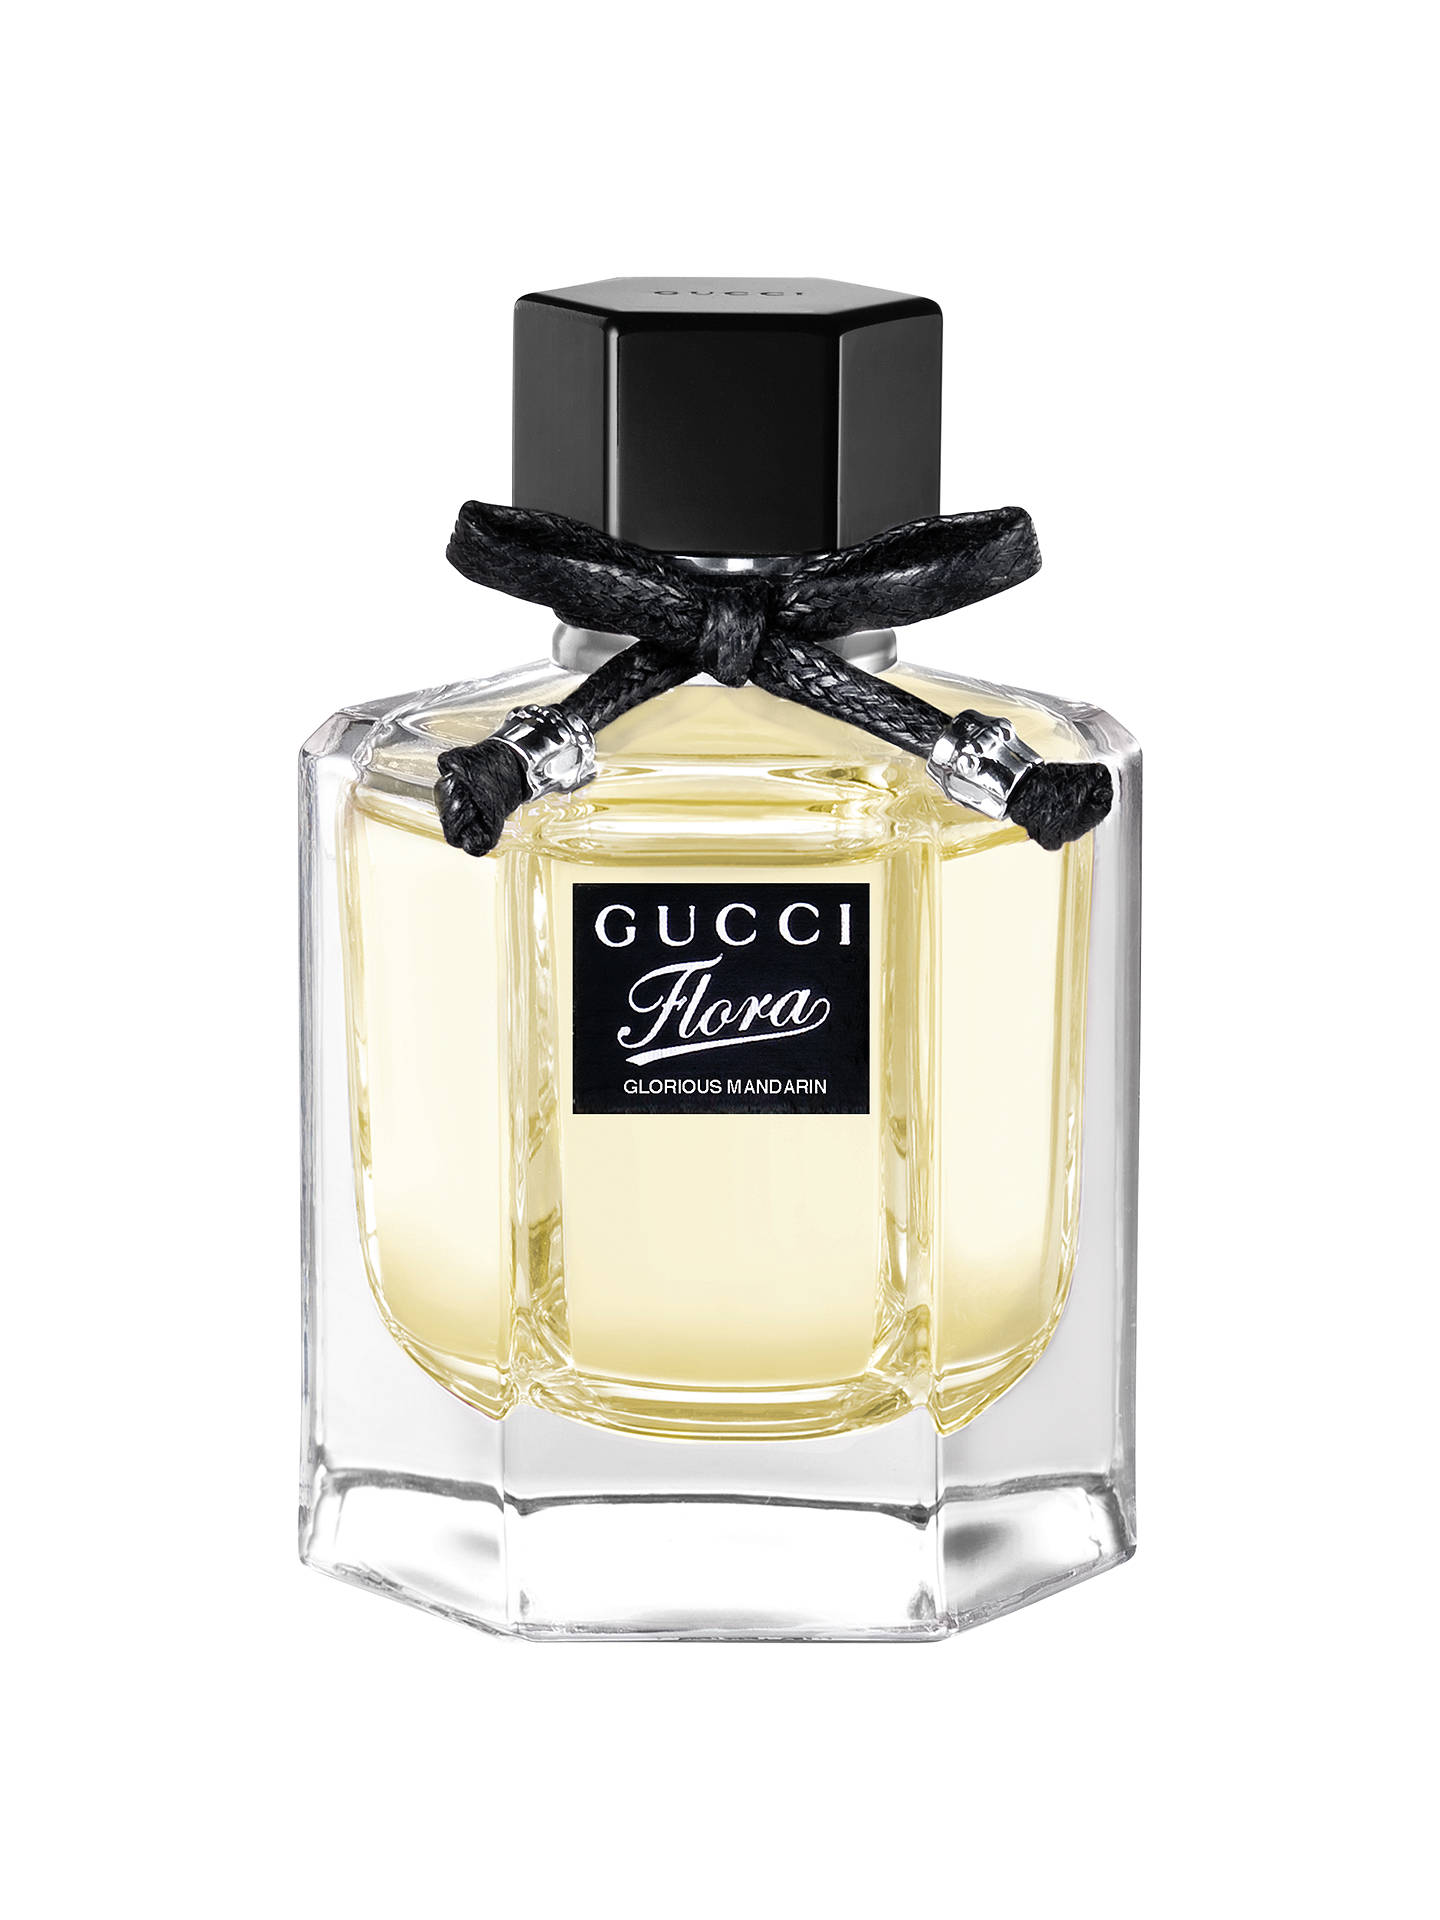 4c762264389 Buy Gucci Flora Glorious Mandarin Eau de Toilette For Her